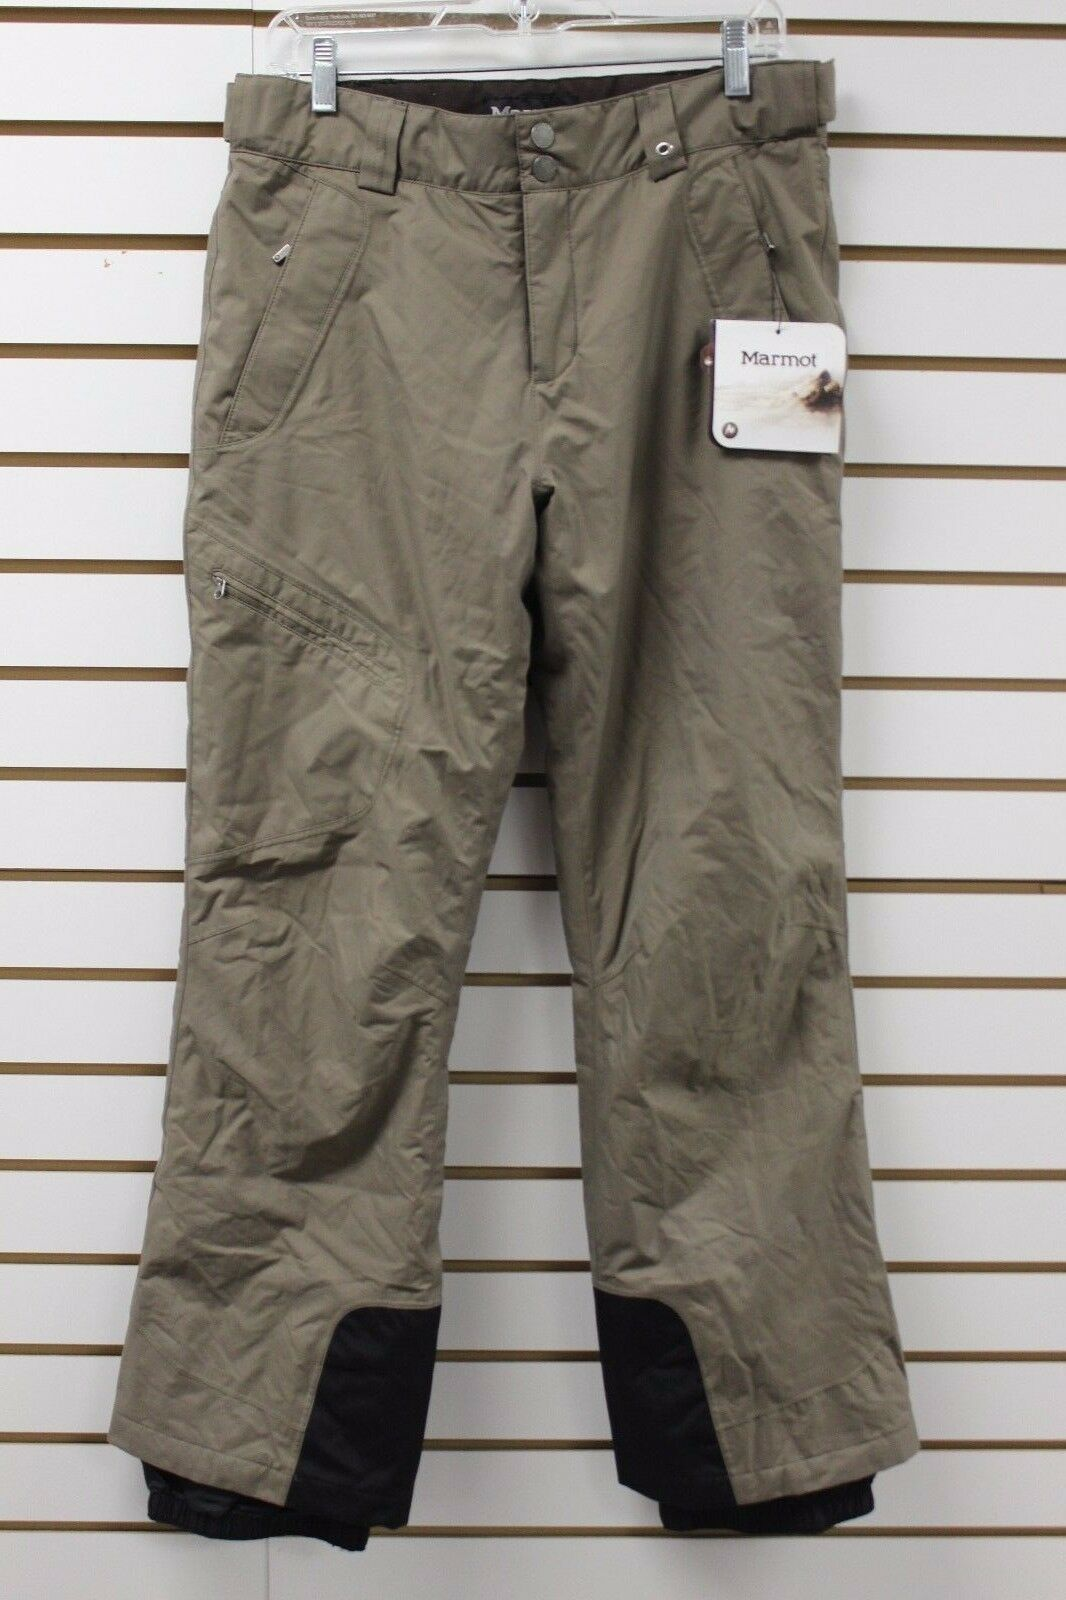 Marmot Women's MemBrain Chamonix  Insulated Pant Walnut 1396 Brand New With Tag  fair prices